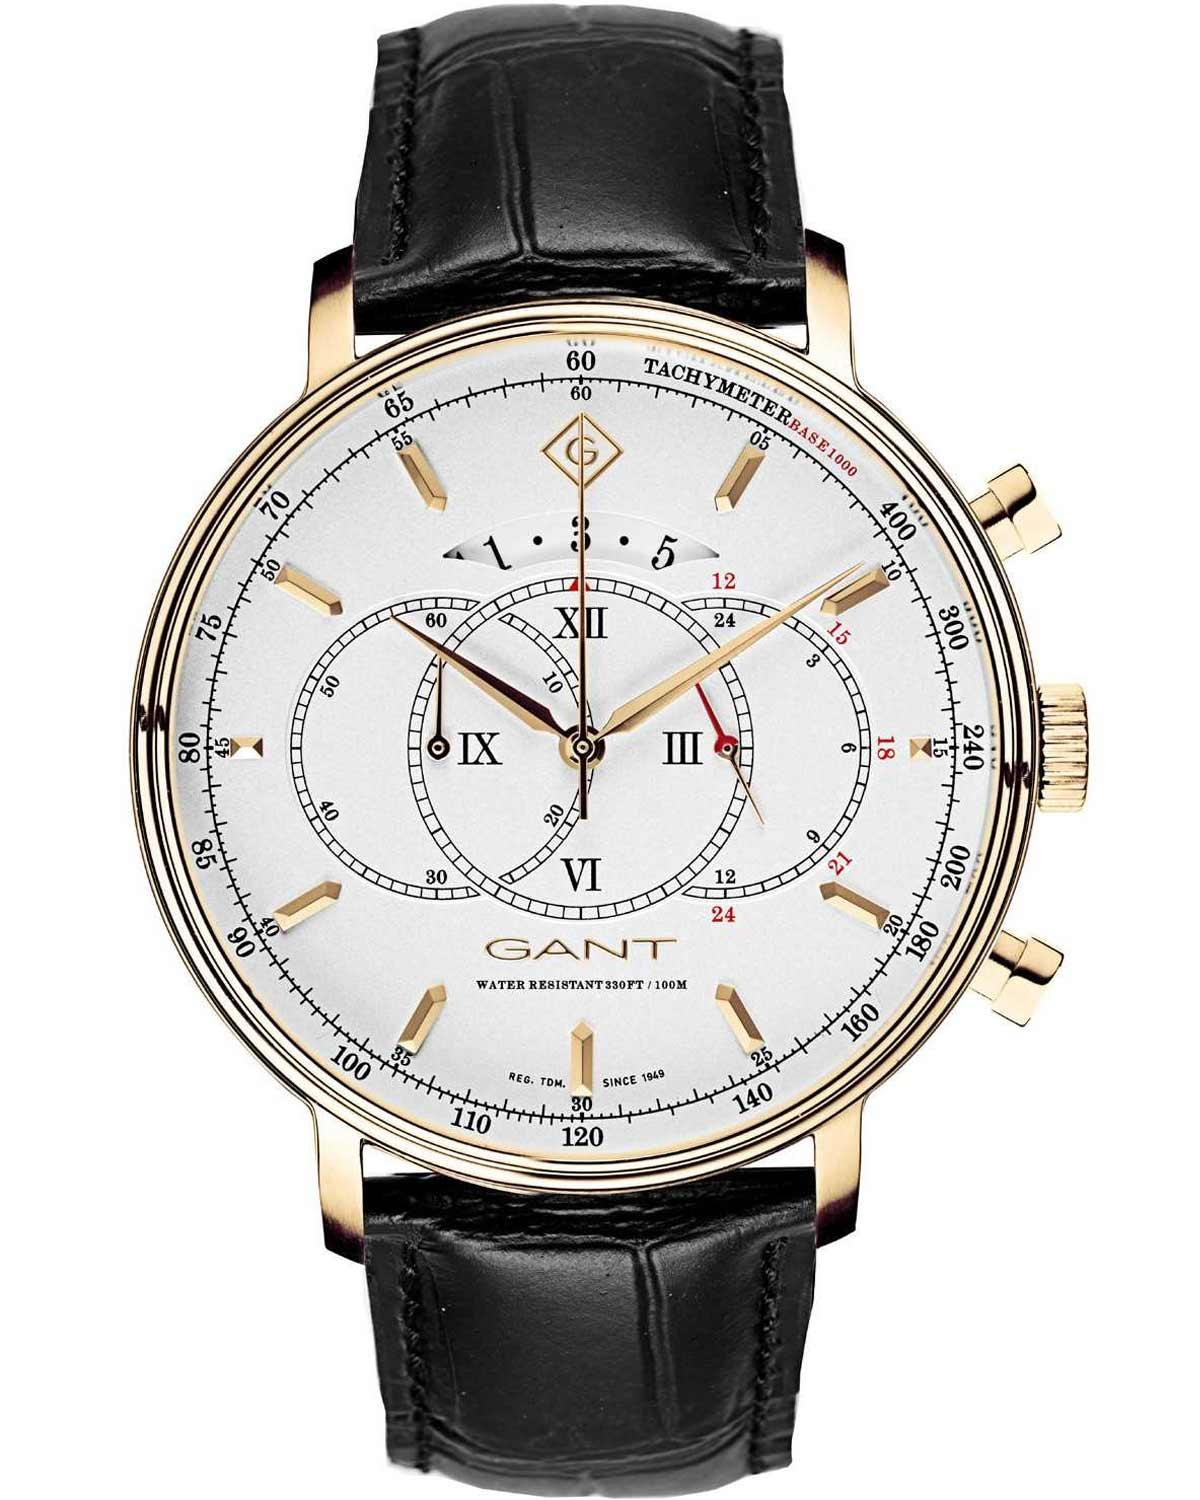 GANT Cameron II Chronograph Men's - G103003, Gold case with Black Leather Strap